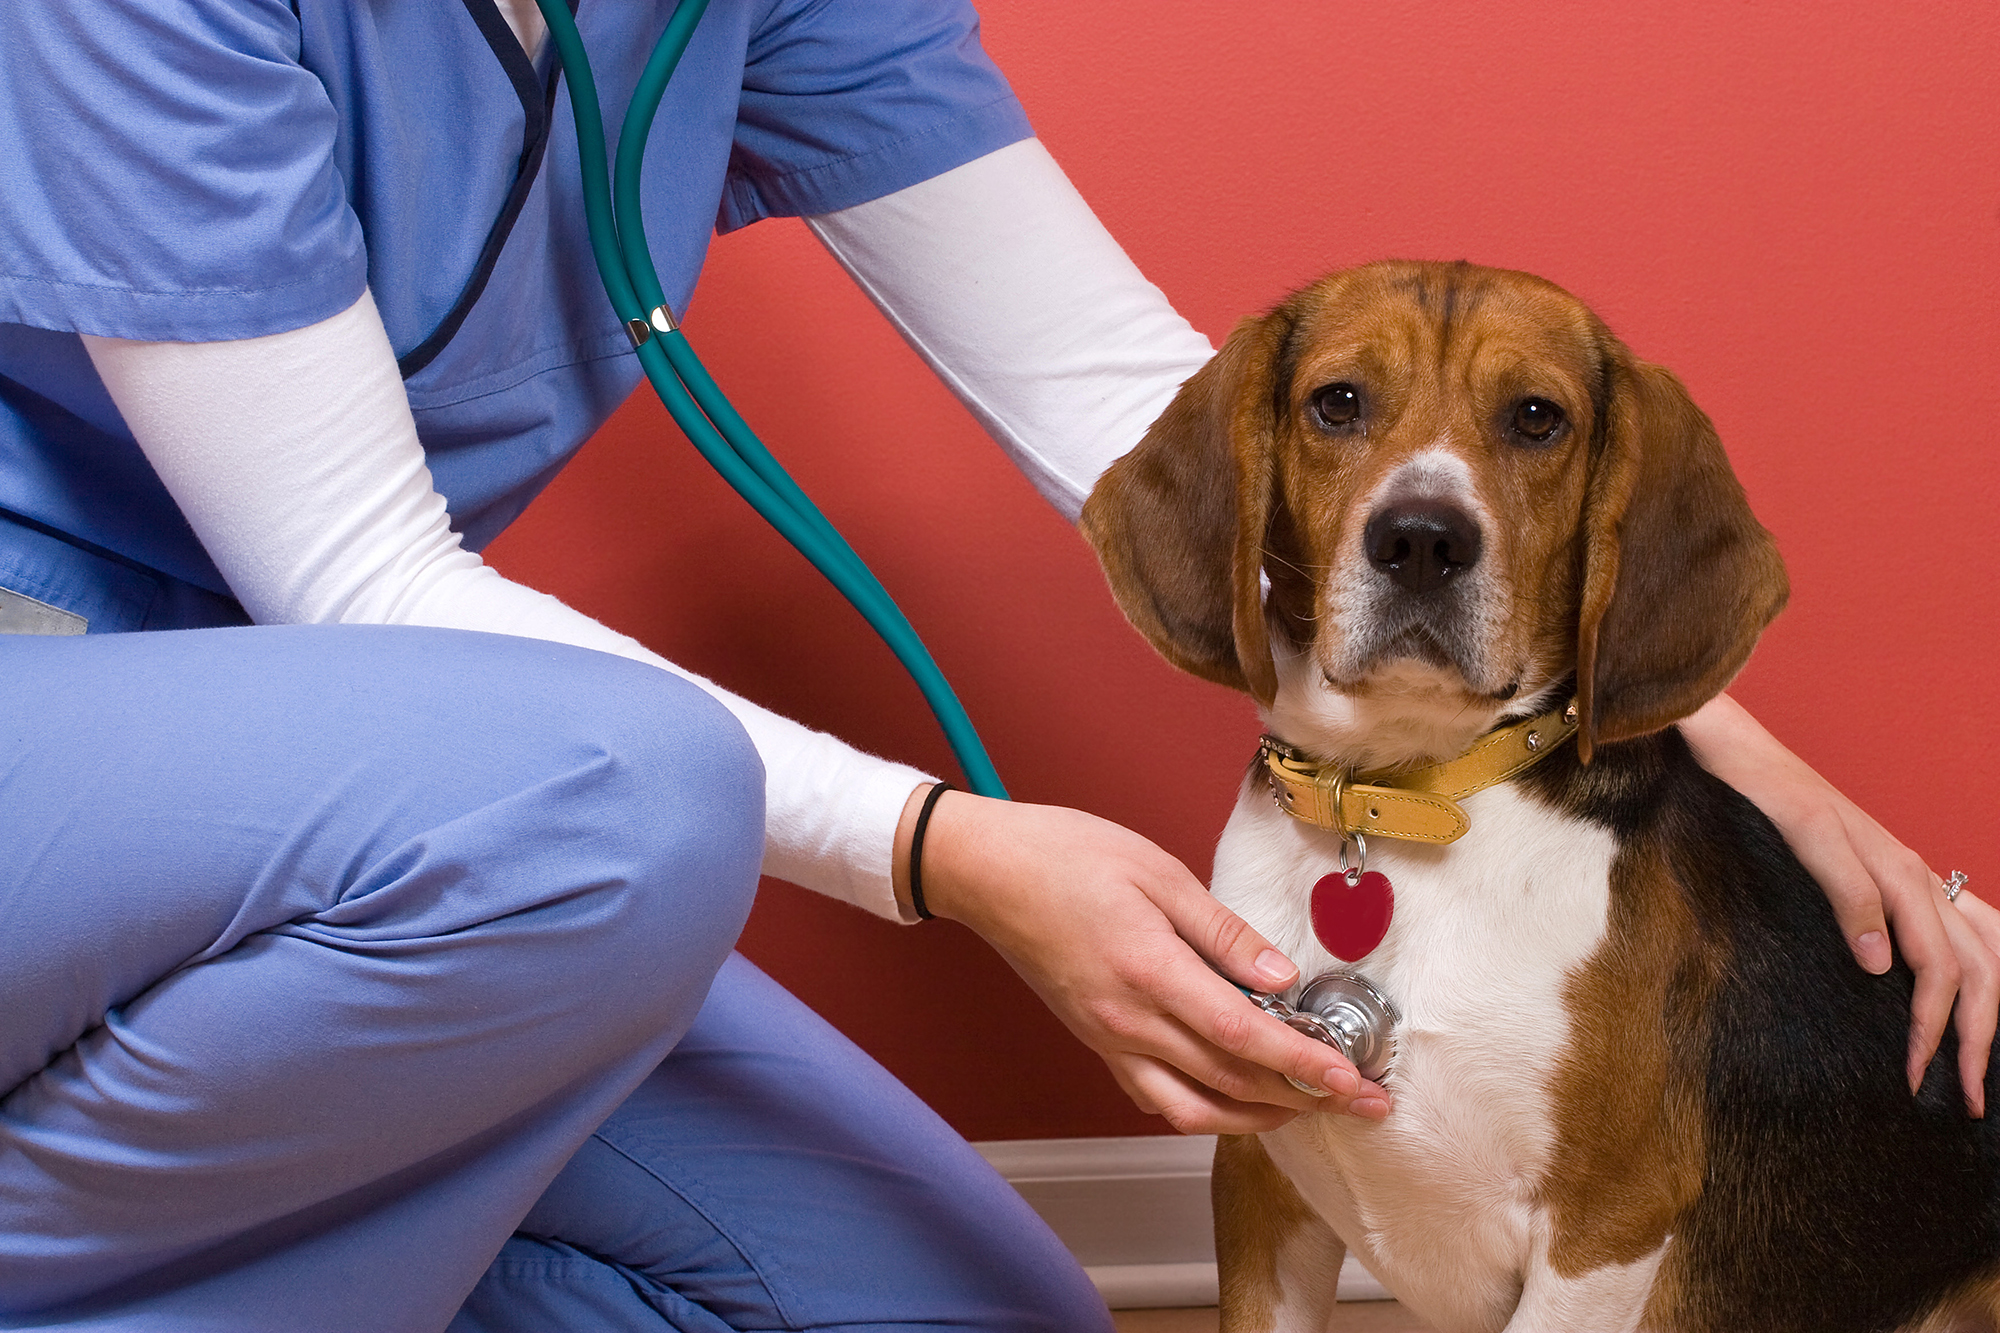 Descriptive image: a dog being examined with a stethoscope by medical staff